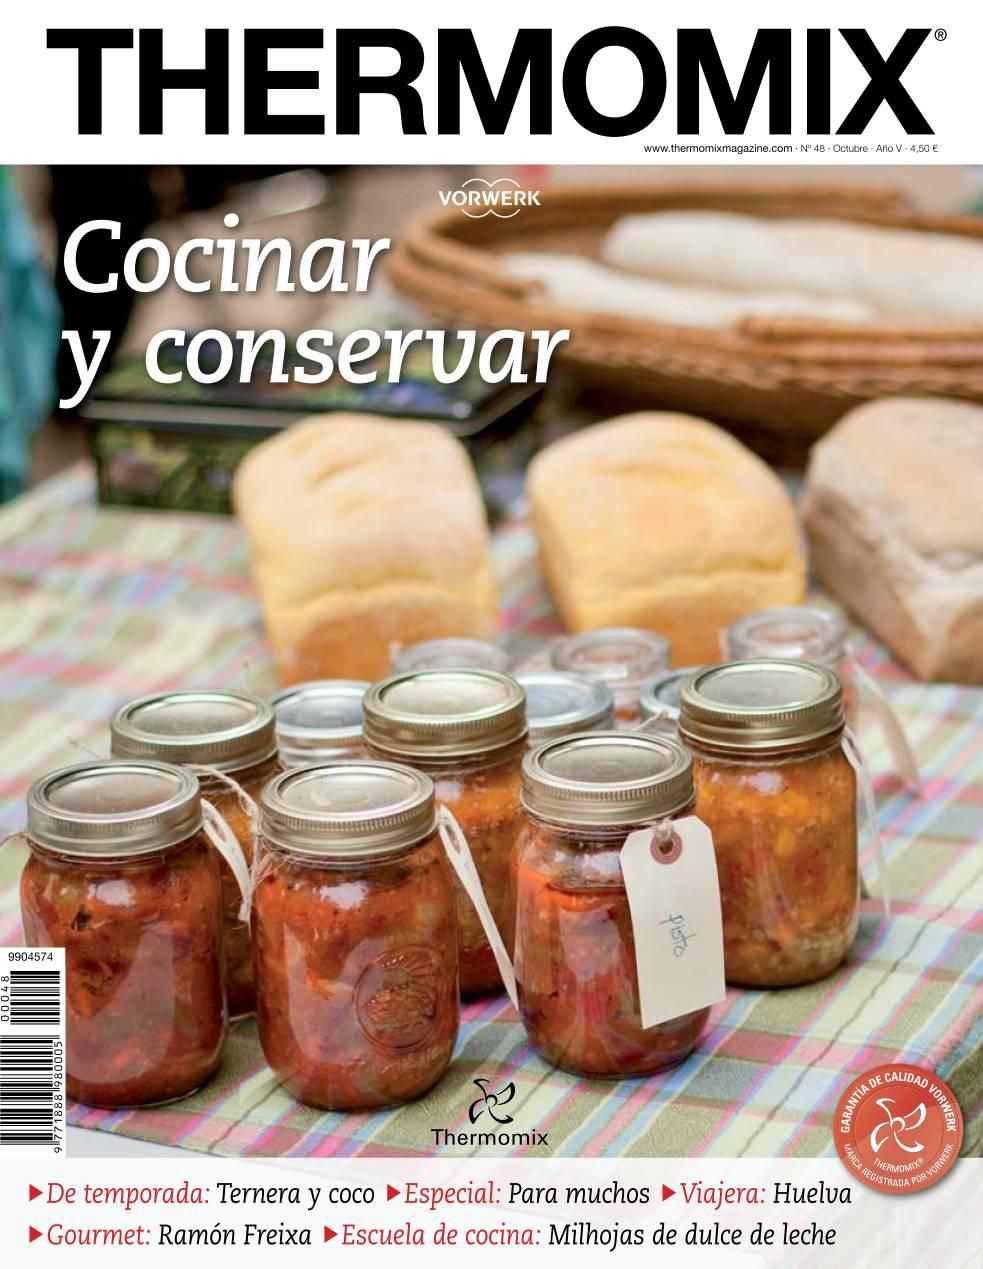 Thema048 thermomix magazinen 48 cocinar y conservar by for Cocinar 4 niveles thermomix